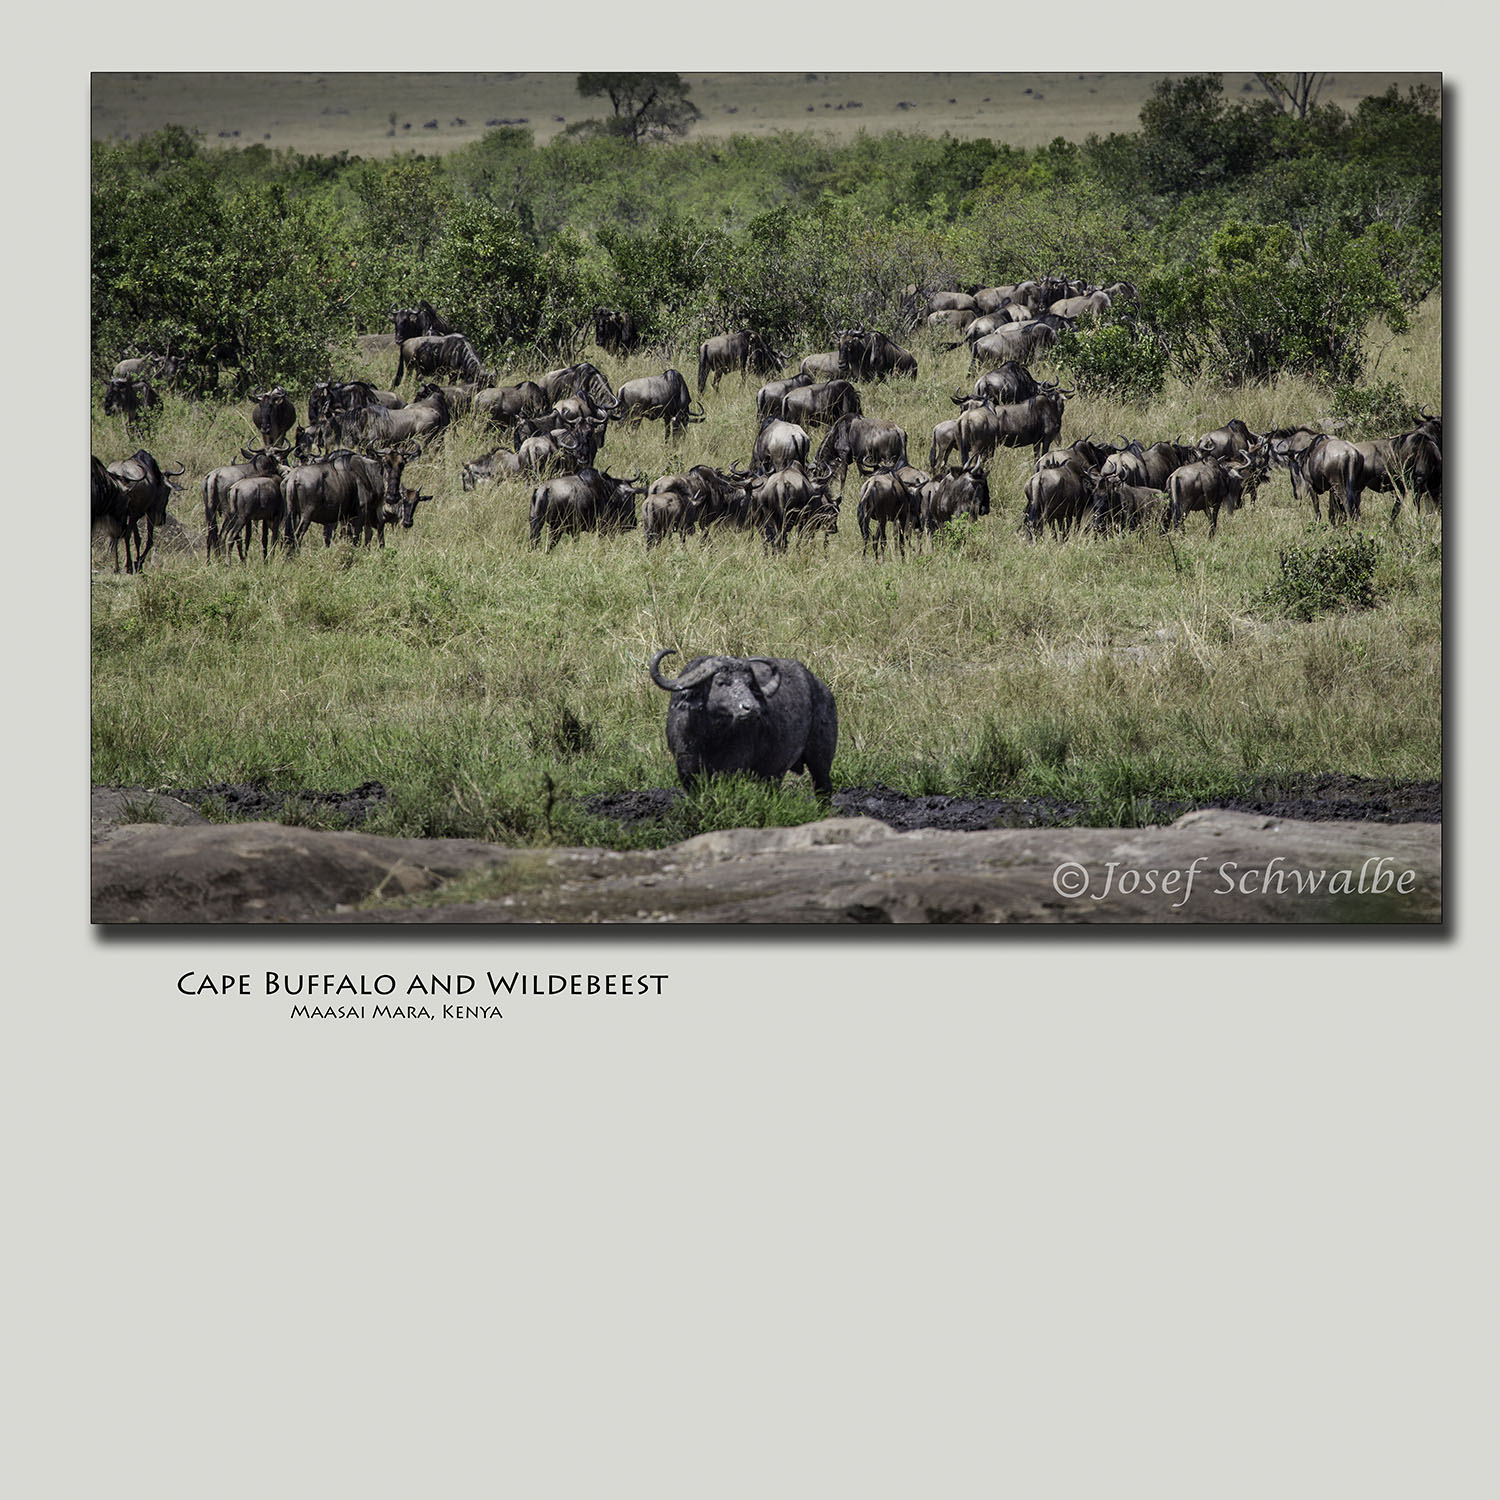 Cape Buffalo and Wildebeest